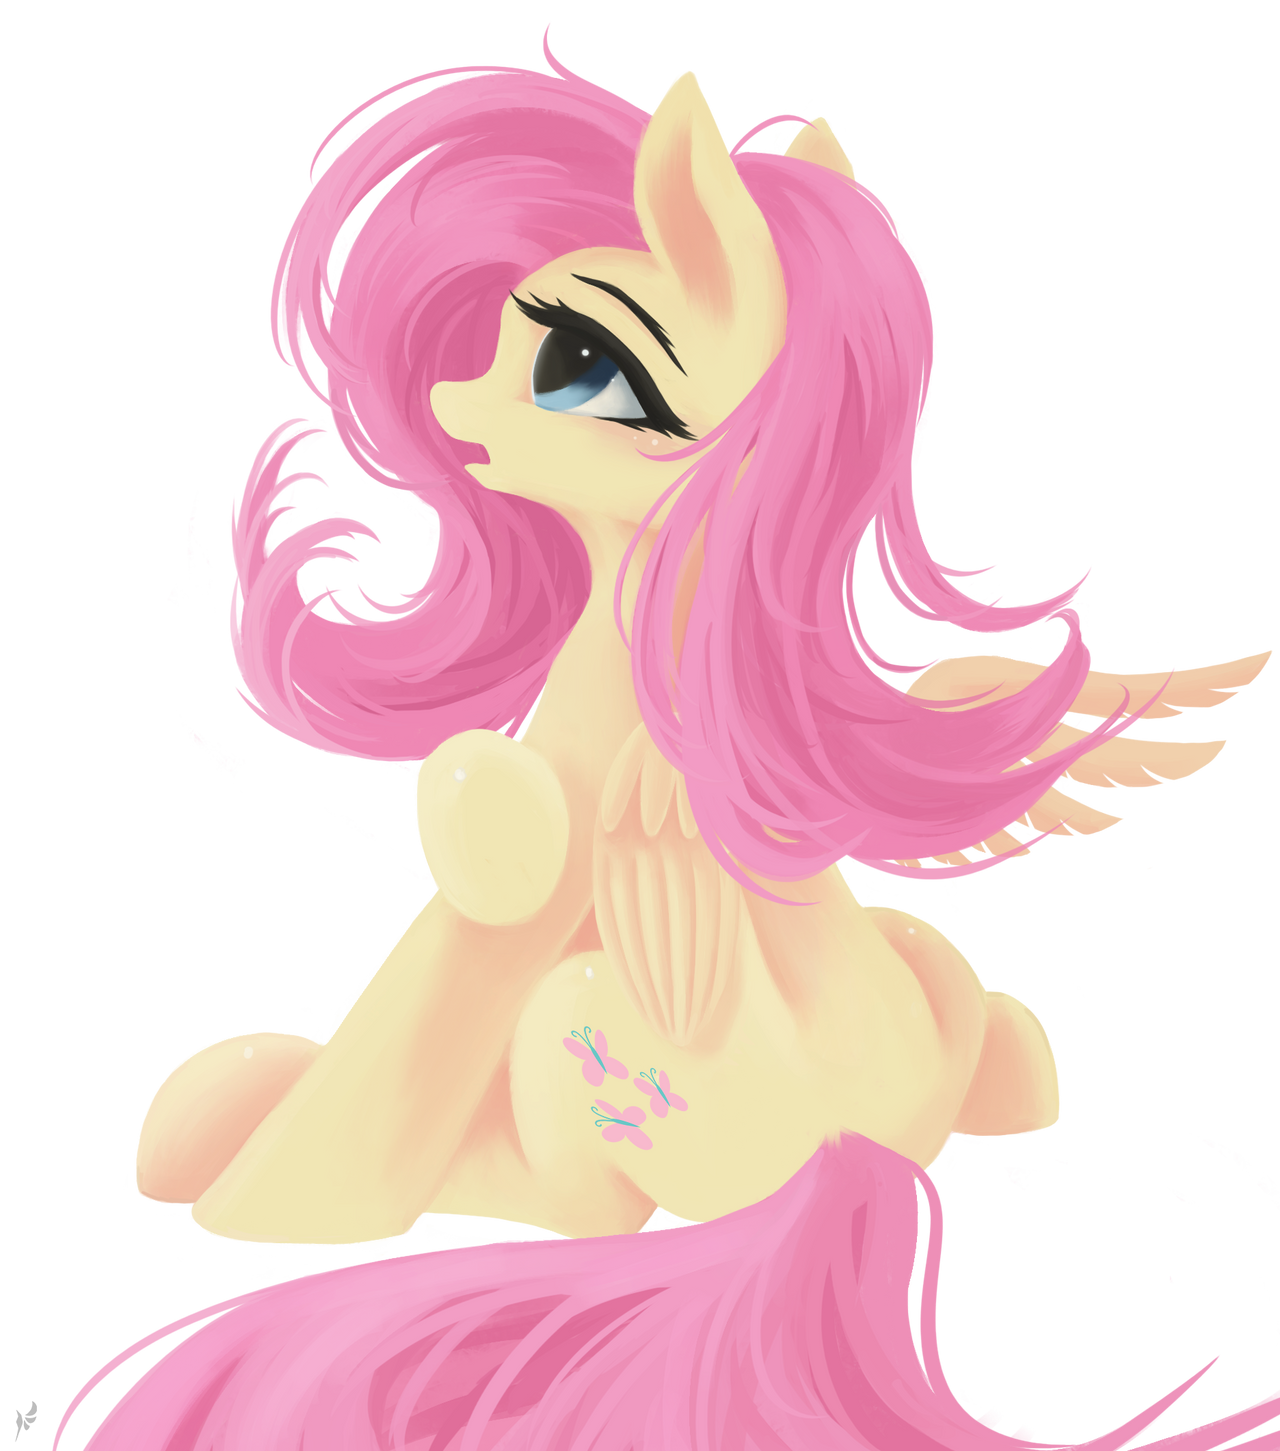 Fluttershy(transparent background) by Fluttersheeeee on